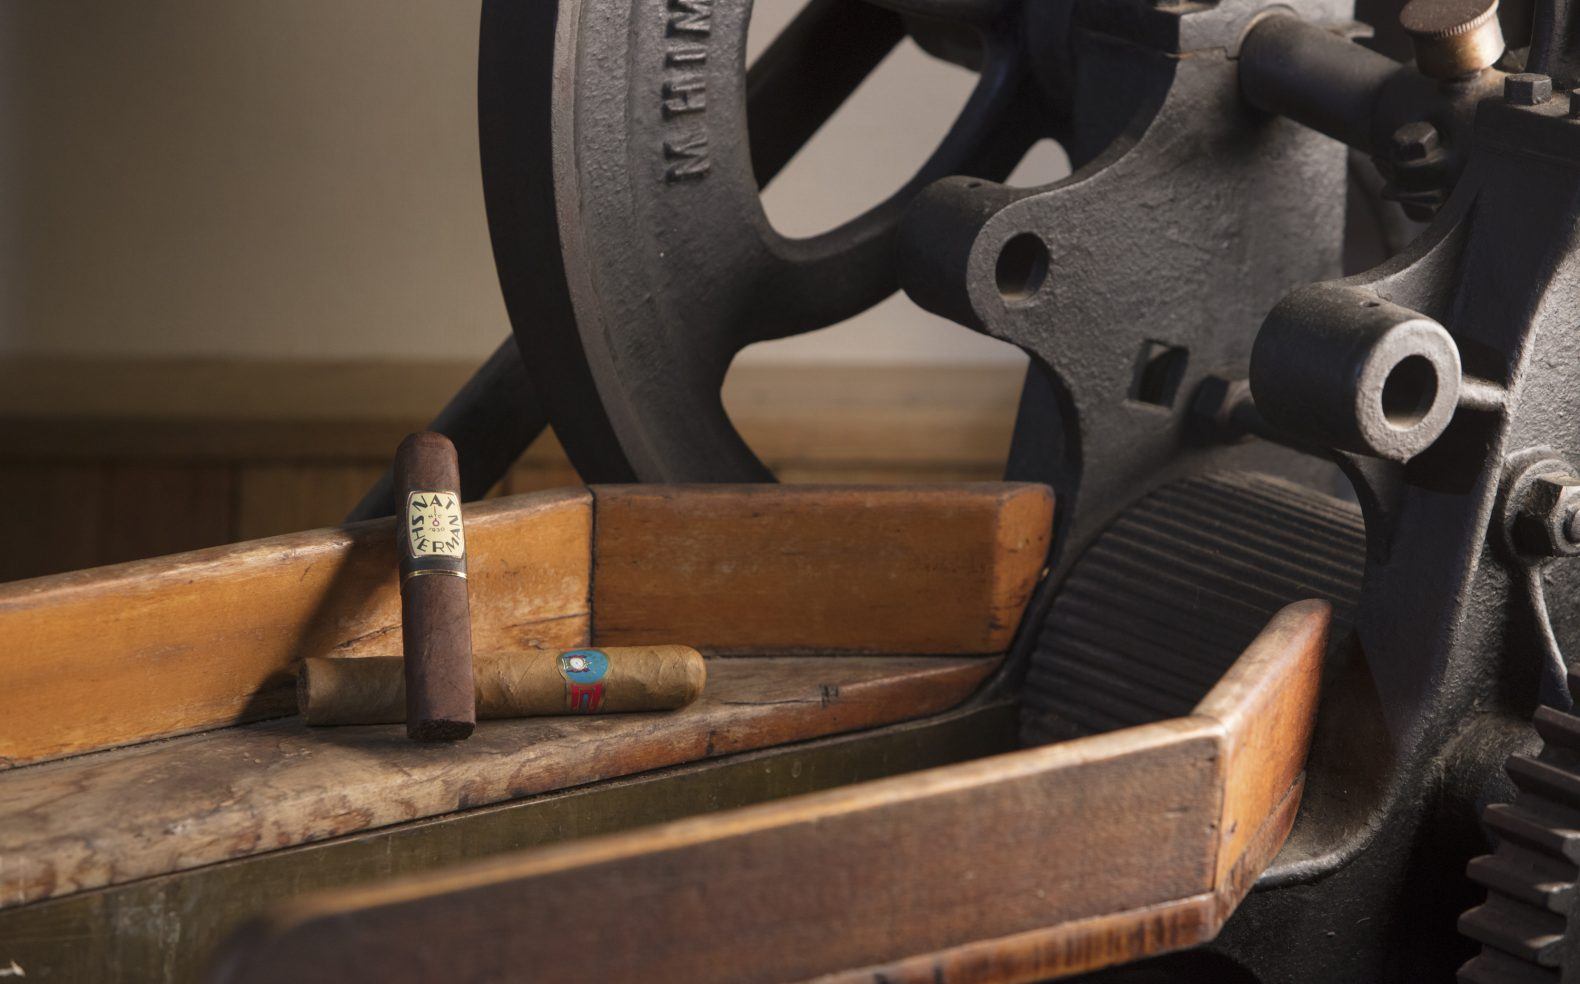 Two cigars being propped up for display on the wooden side of an antique cigar press.